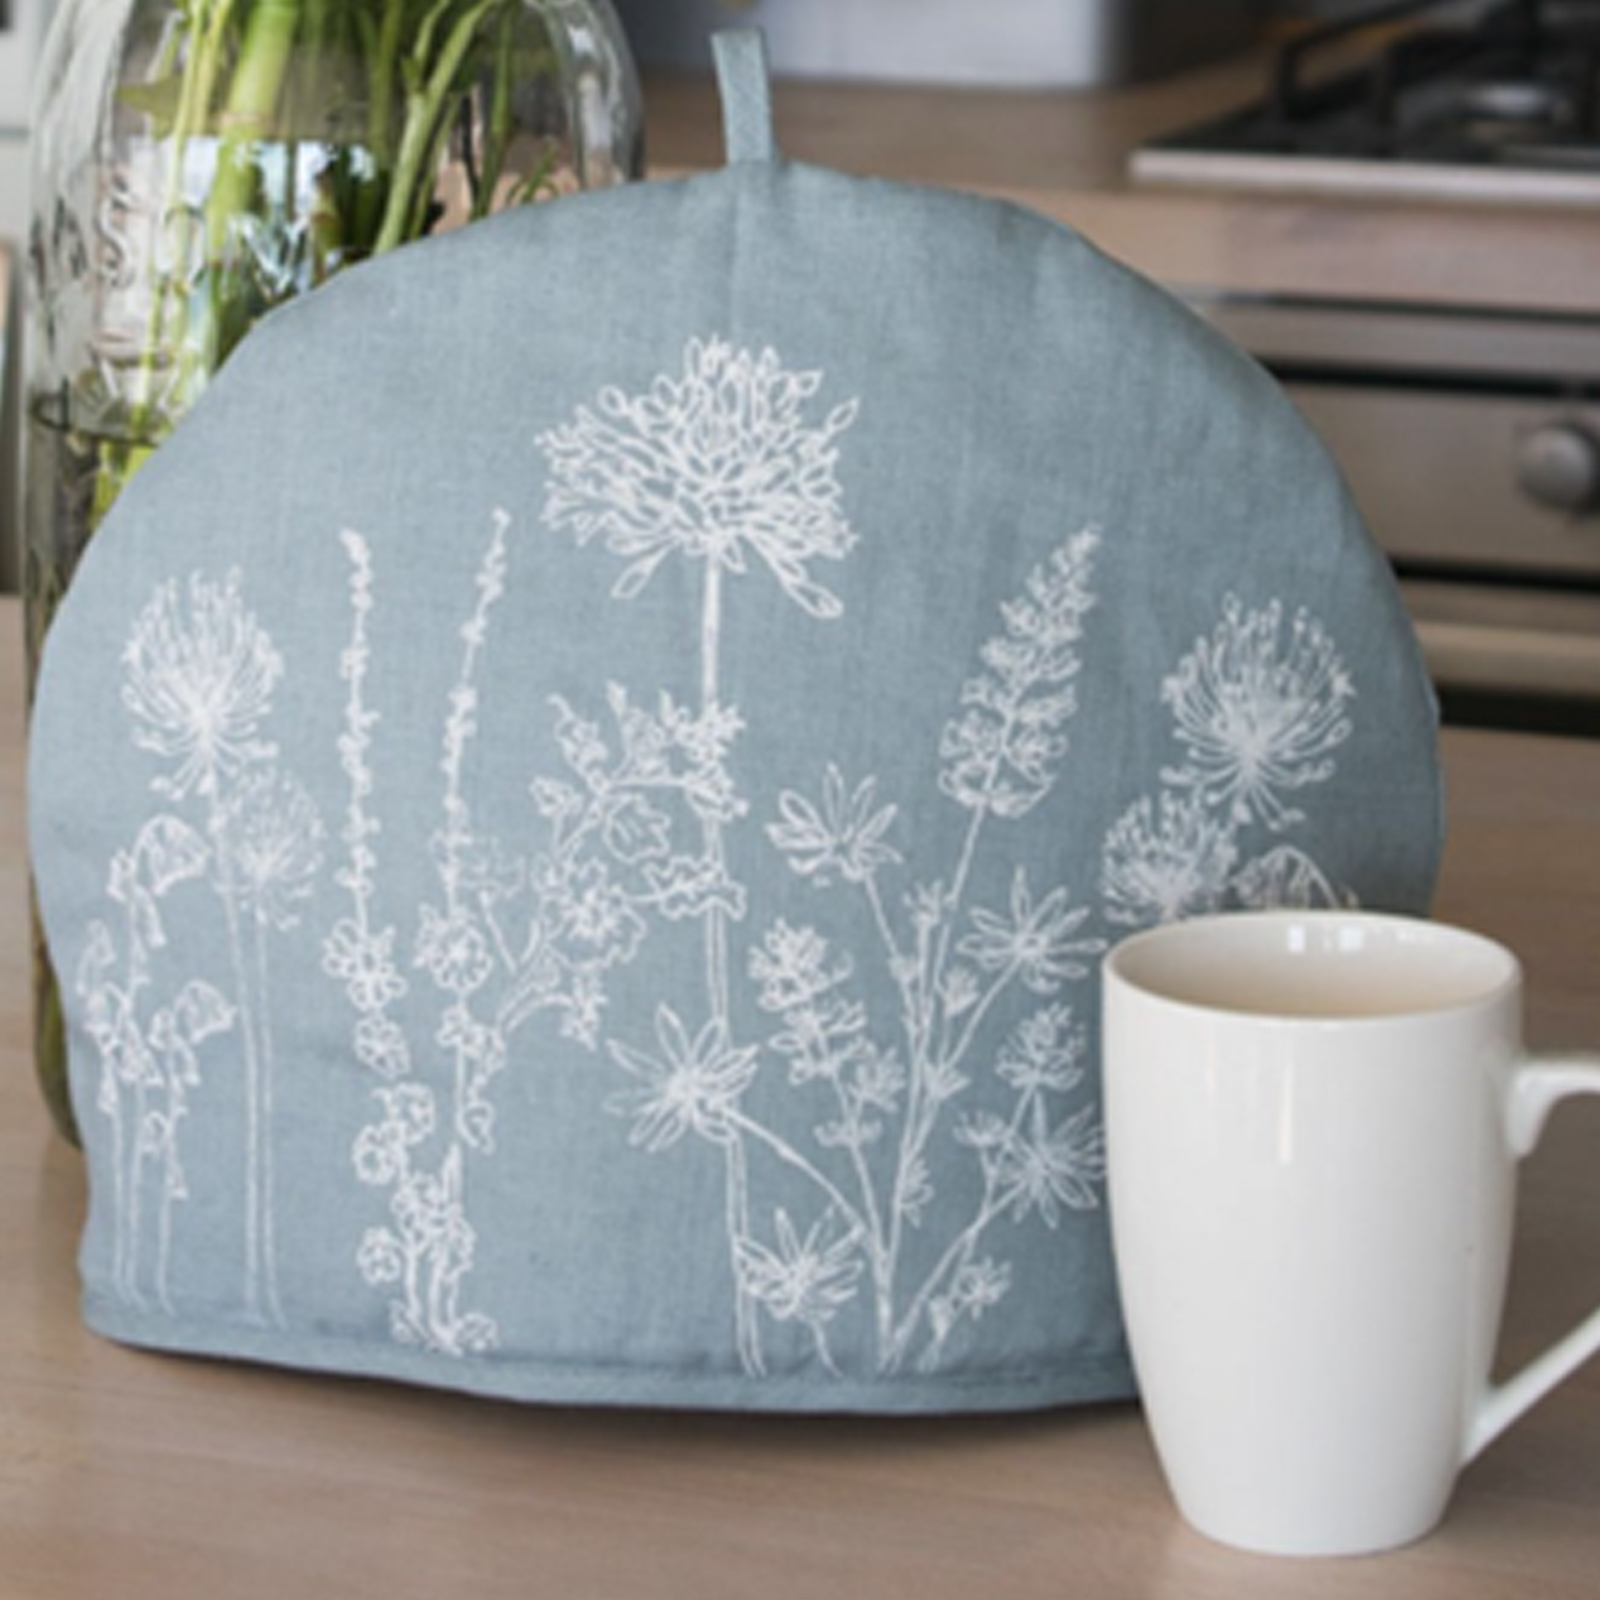 Tea Cosy - Hand Printed Linen in Hollyhock Blue - Country Garden Collection by Helen Round